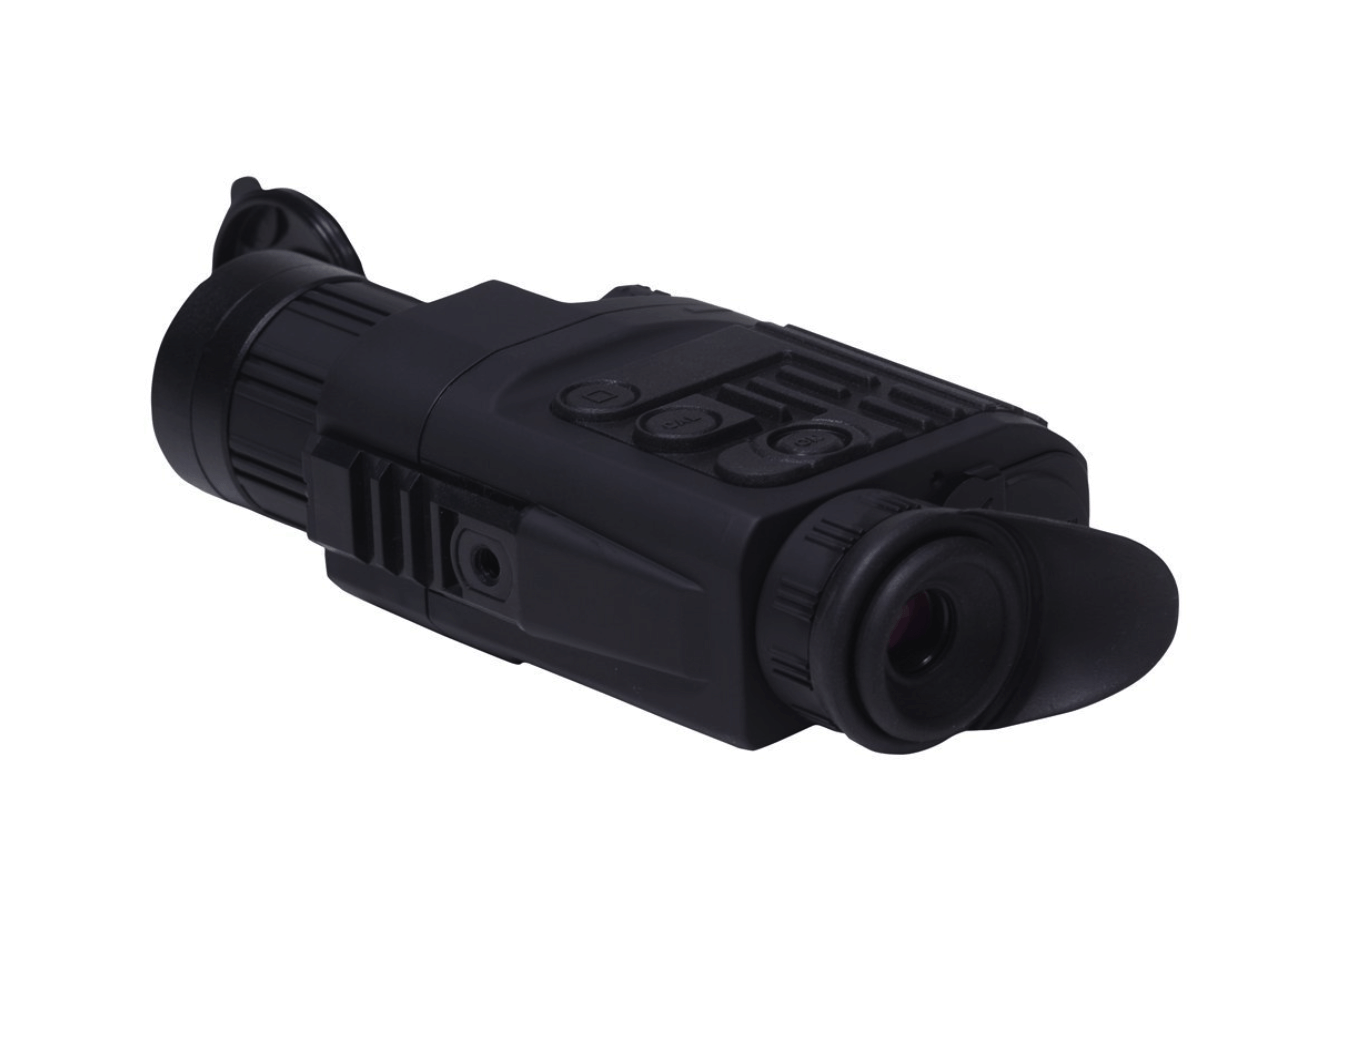 QUANTUM HD38S THERMAL IMAGING SCOPE – BY PULSAR (PL77311